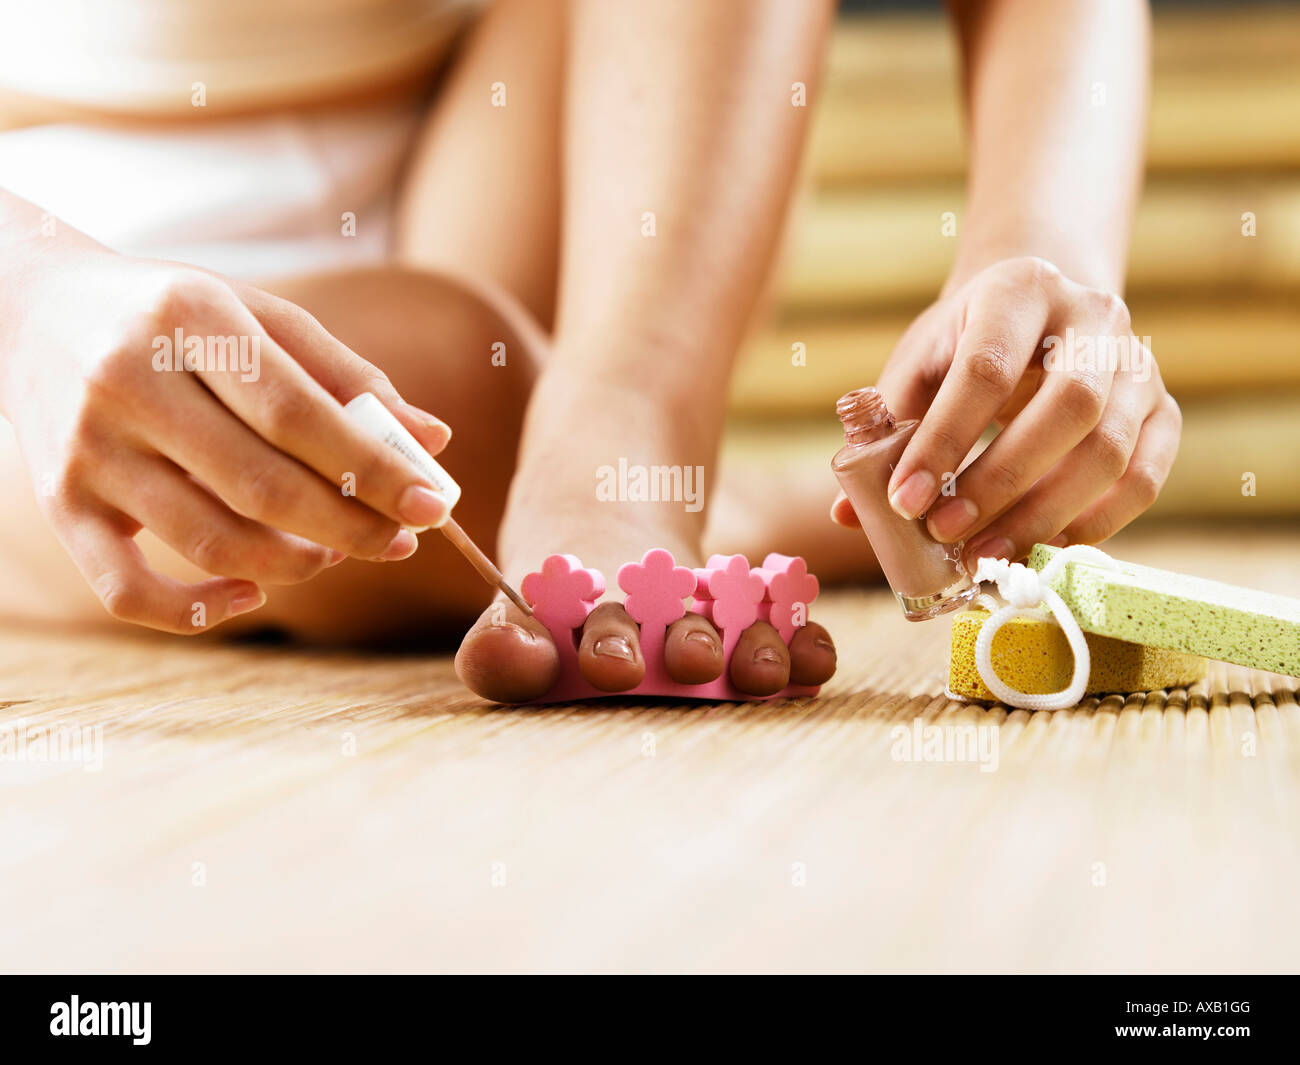 Close Ups Of Toes Of A Young Asian Woman Applying Nail Polish On Her